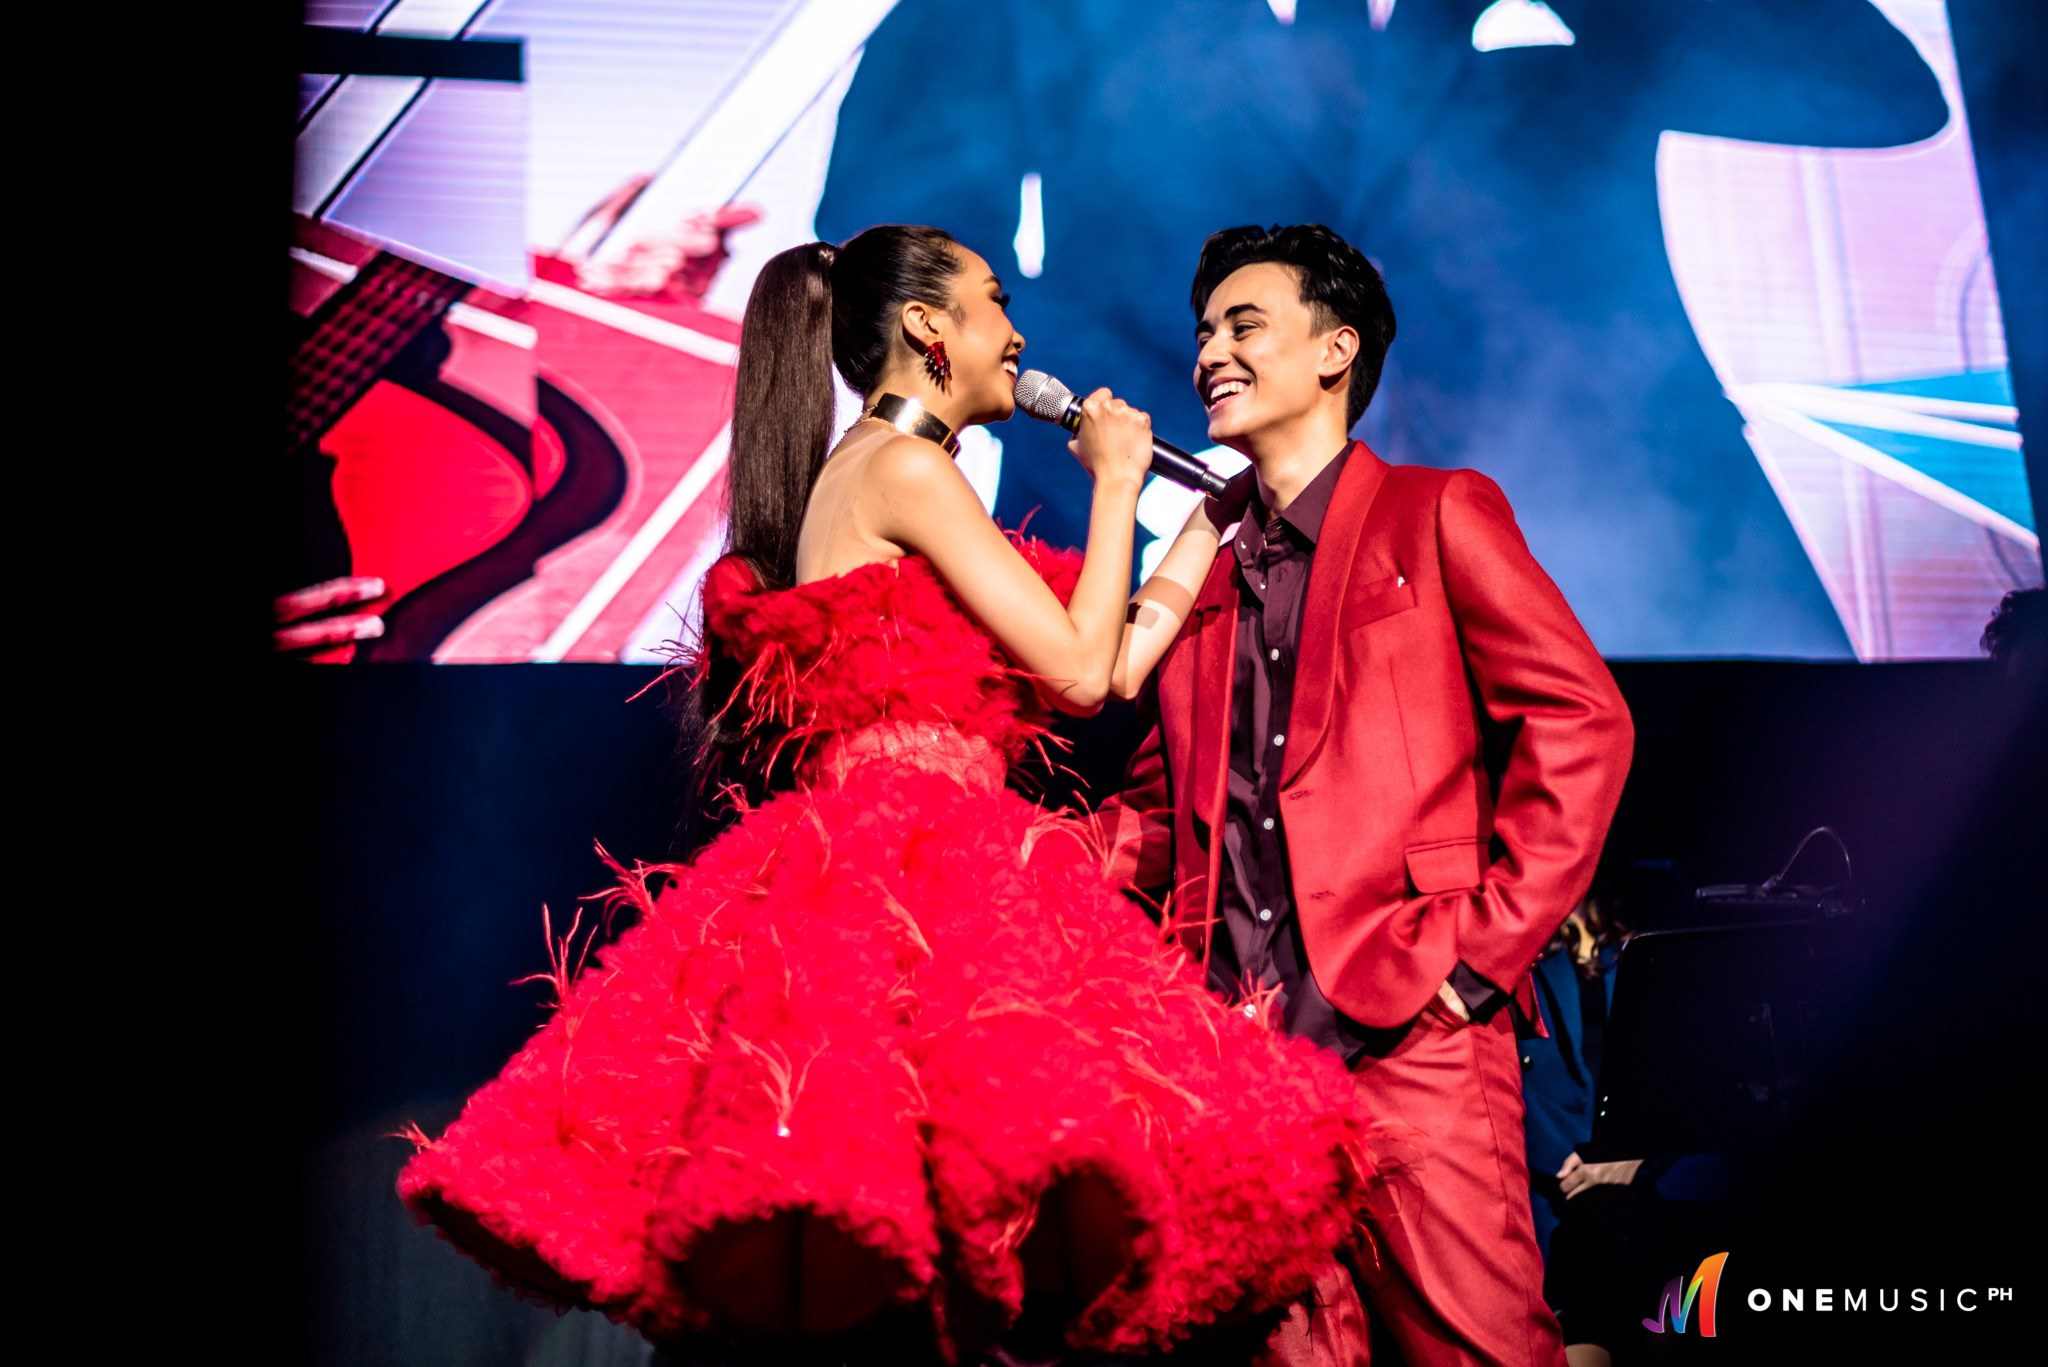 Fellow celebrities express support for Maymay, Edward